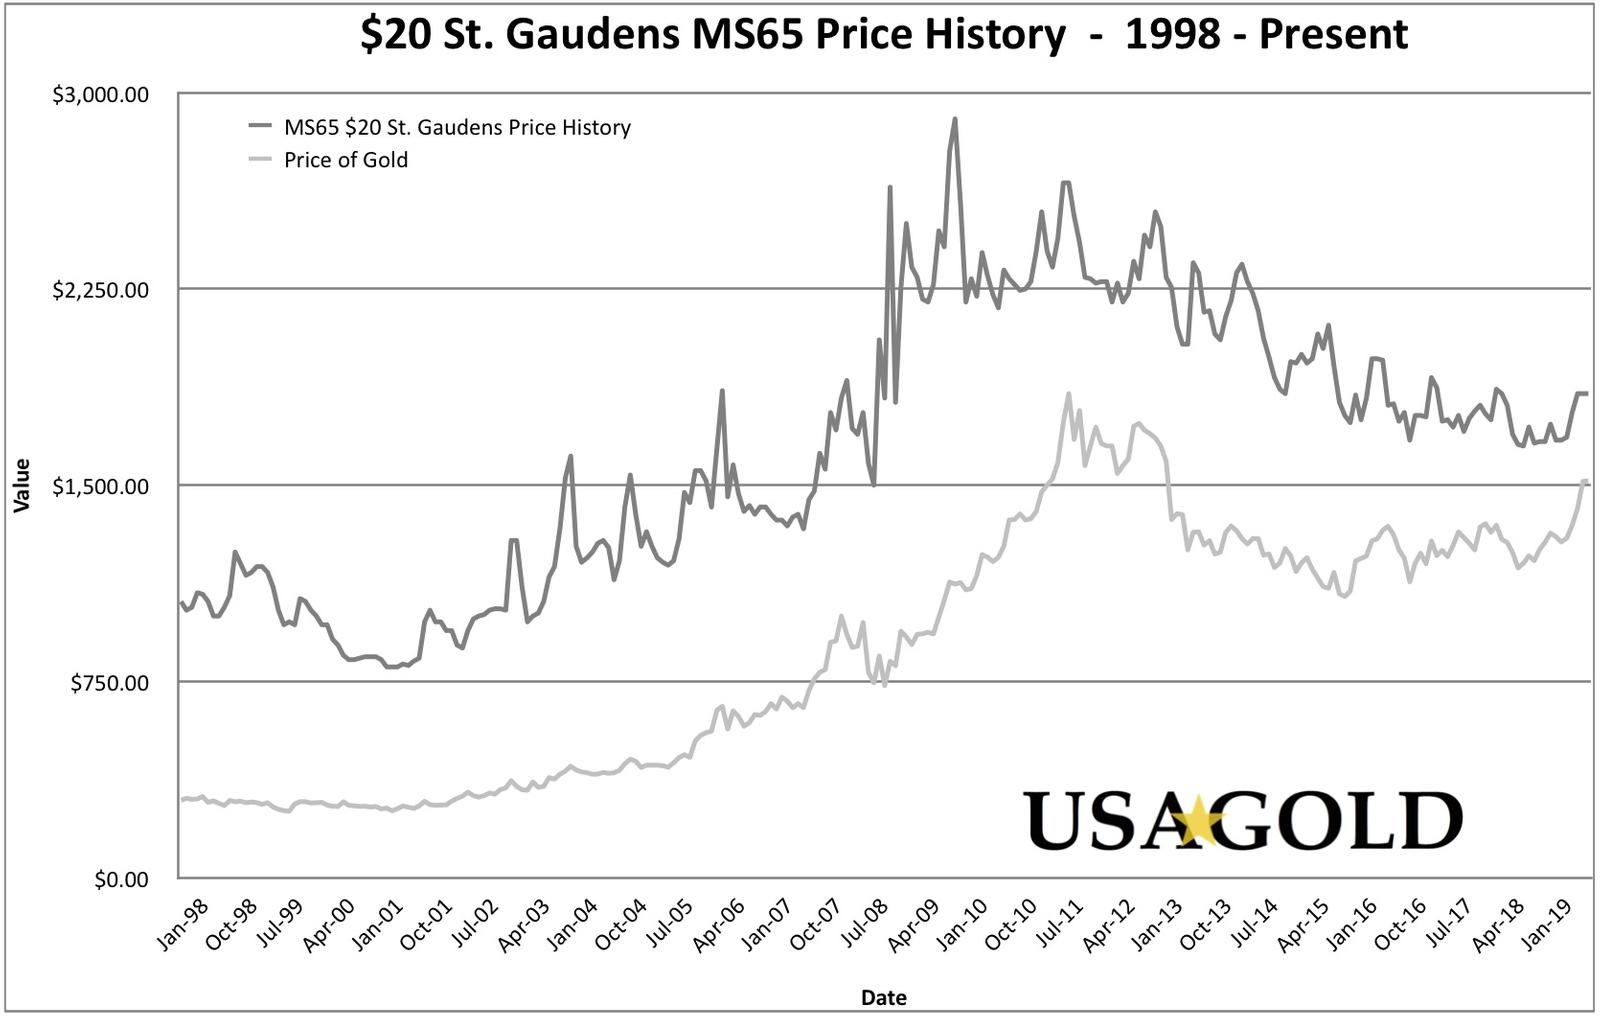 $20 St. Gaudens MS65 Price History Graph (20 Year), shown with the price of spot gold for the same period.